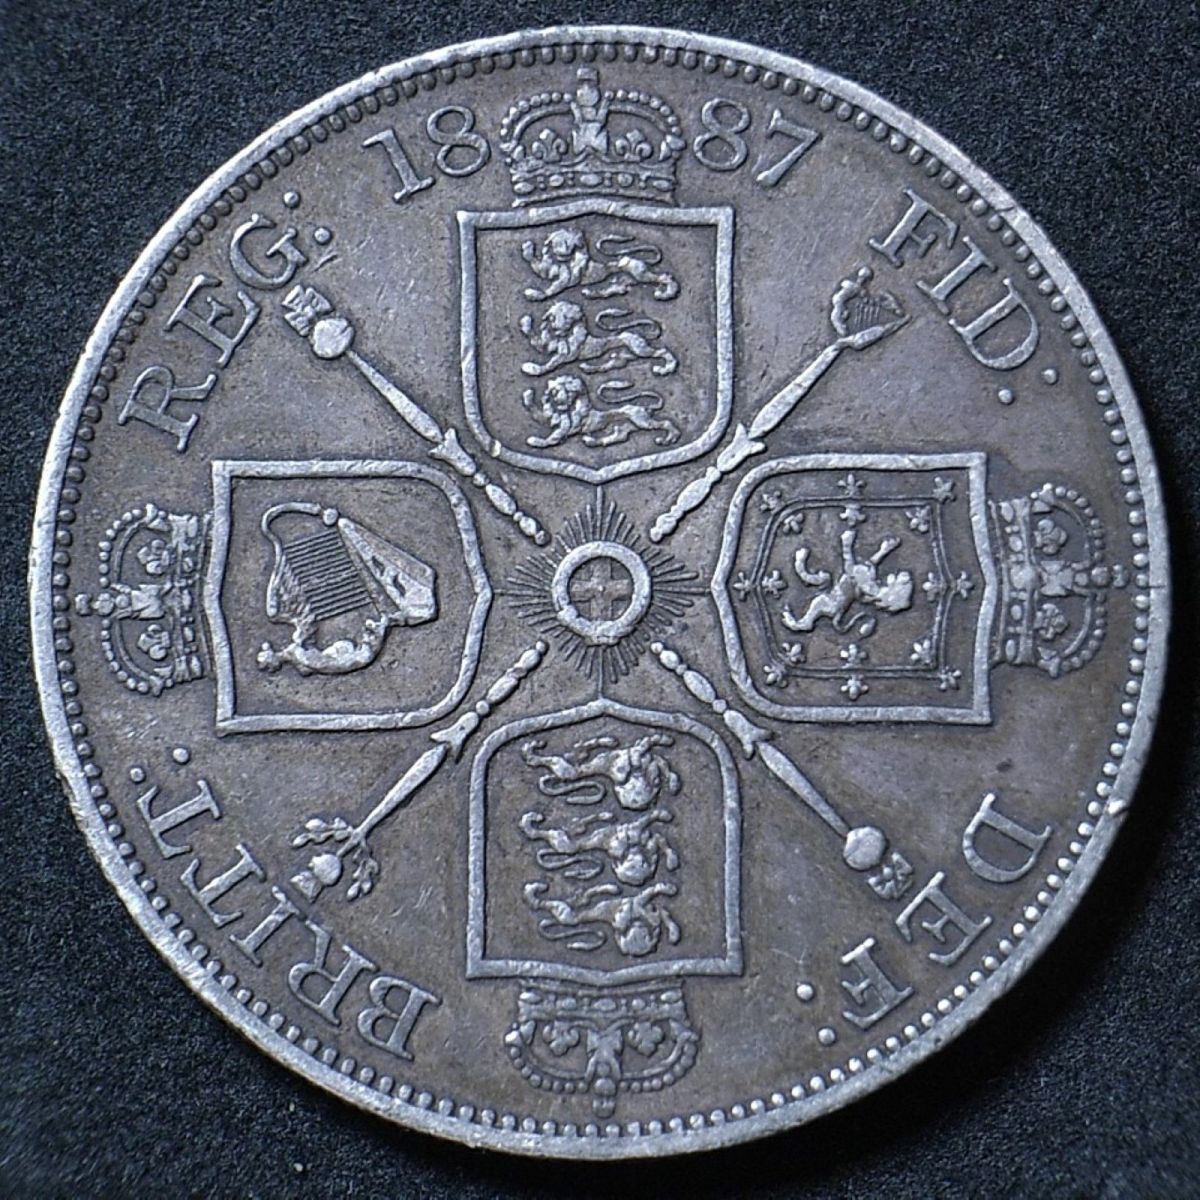 UK 1887 Double florin reverse close up showing the Arabic 1 in the date